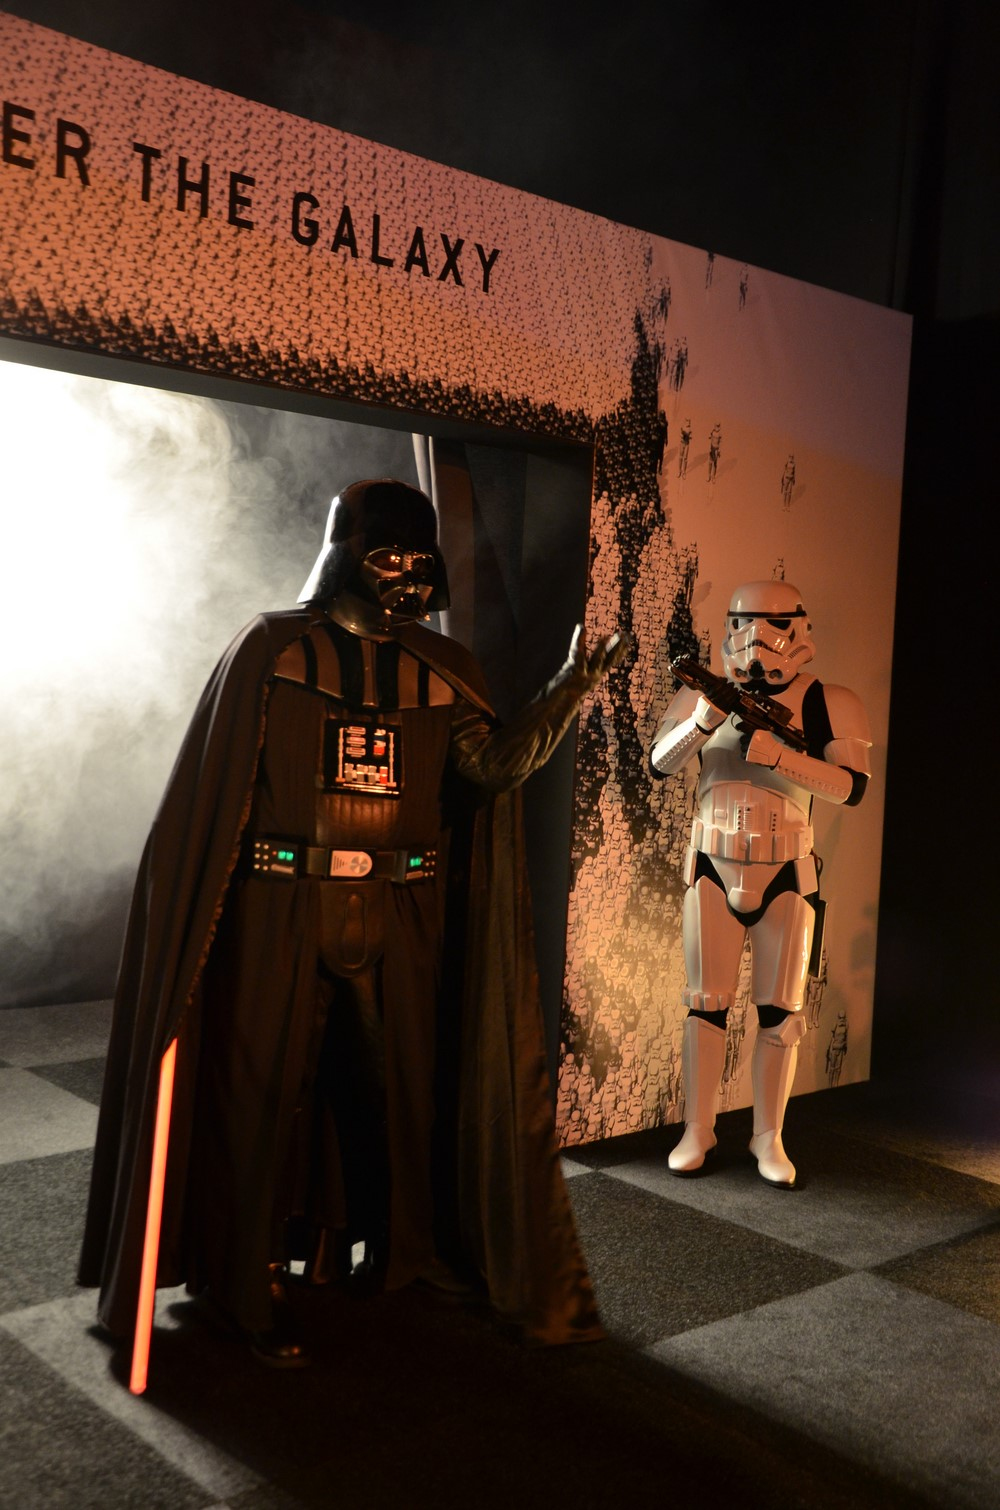 Star Wars Identities Bruxelles 2